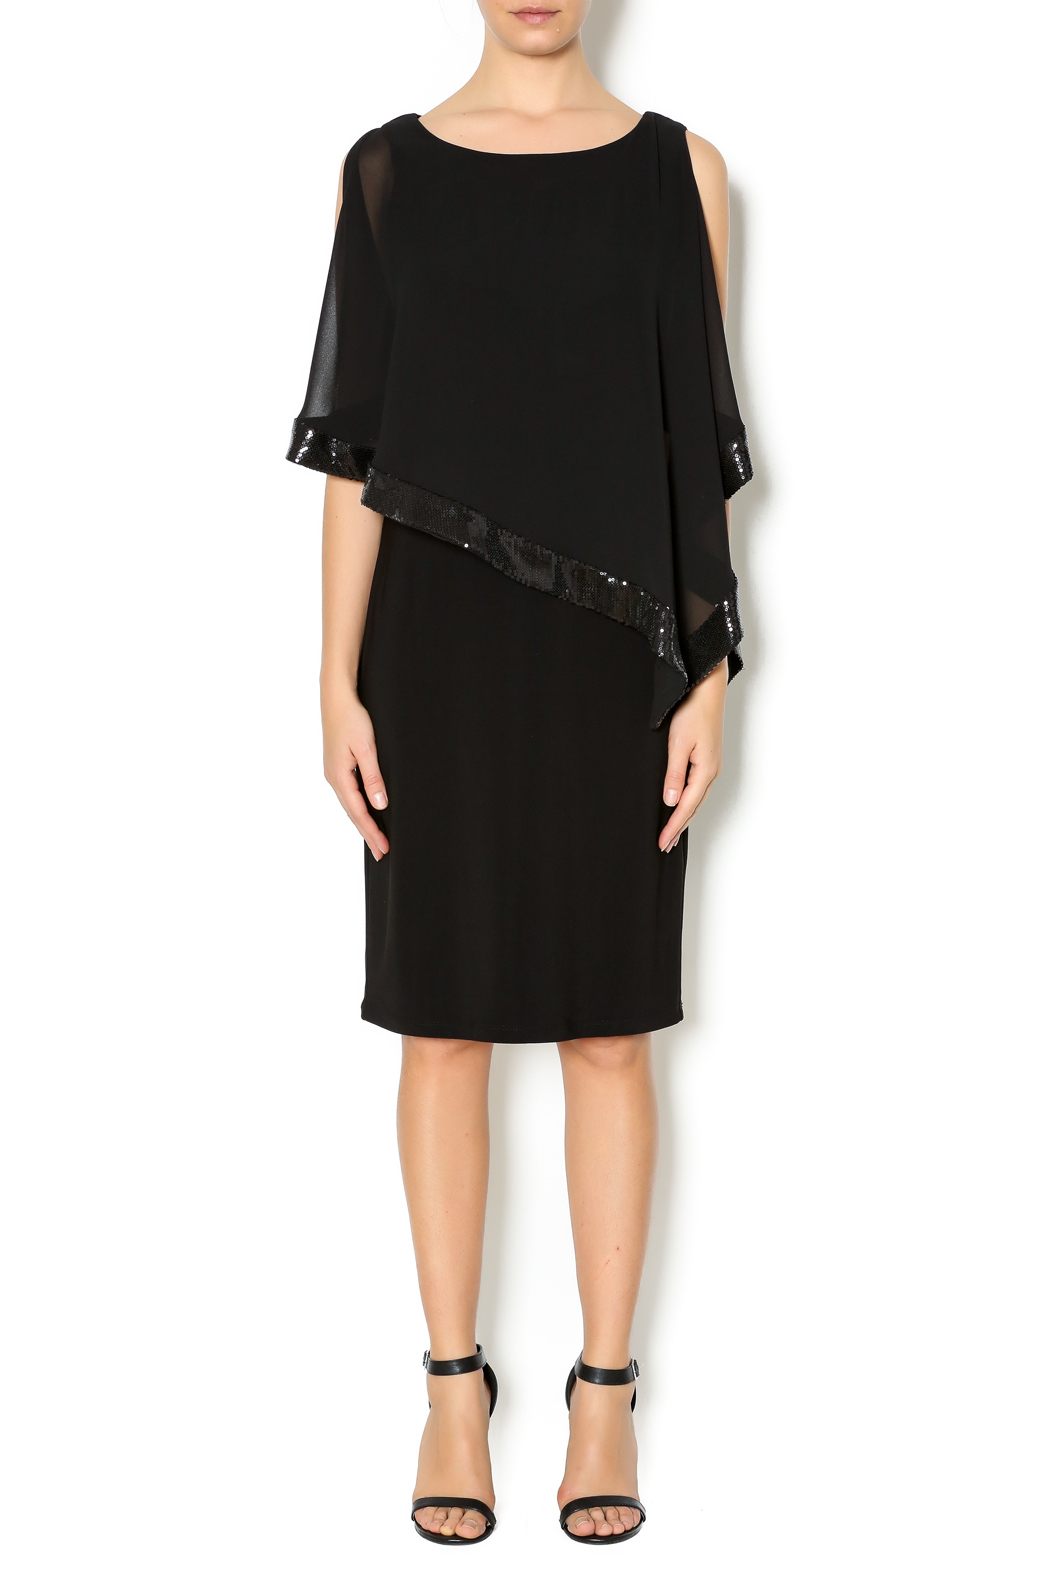 Frank Lyman Black Cocktail Dress From Canada By Cheeky